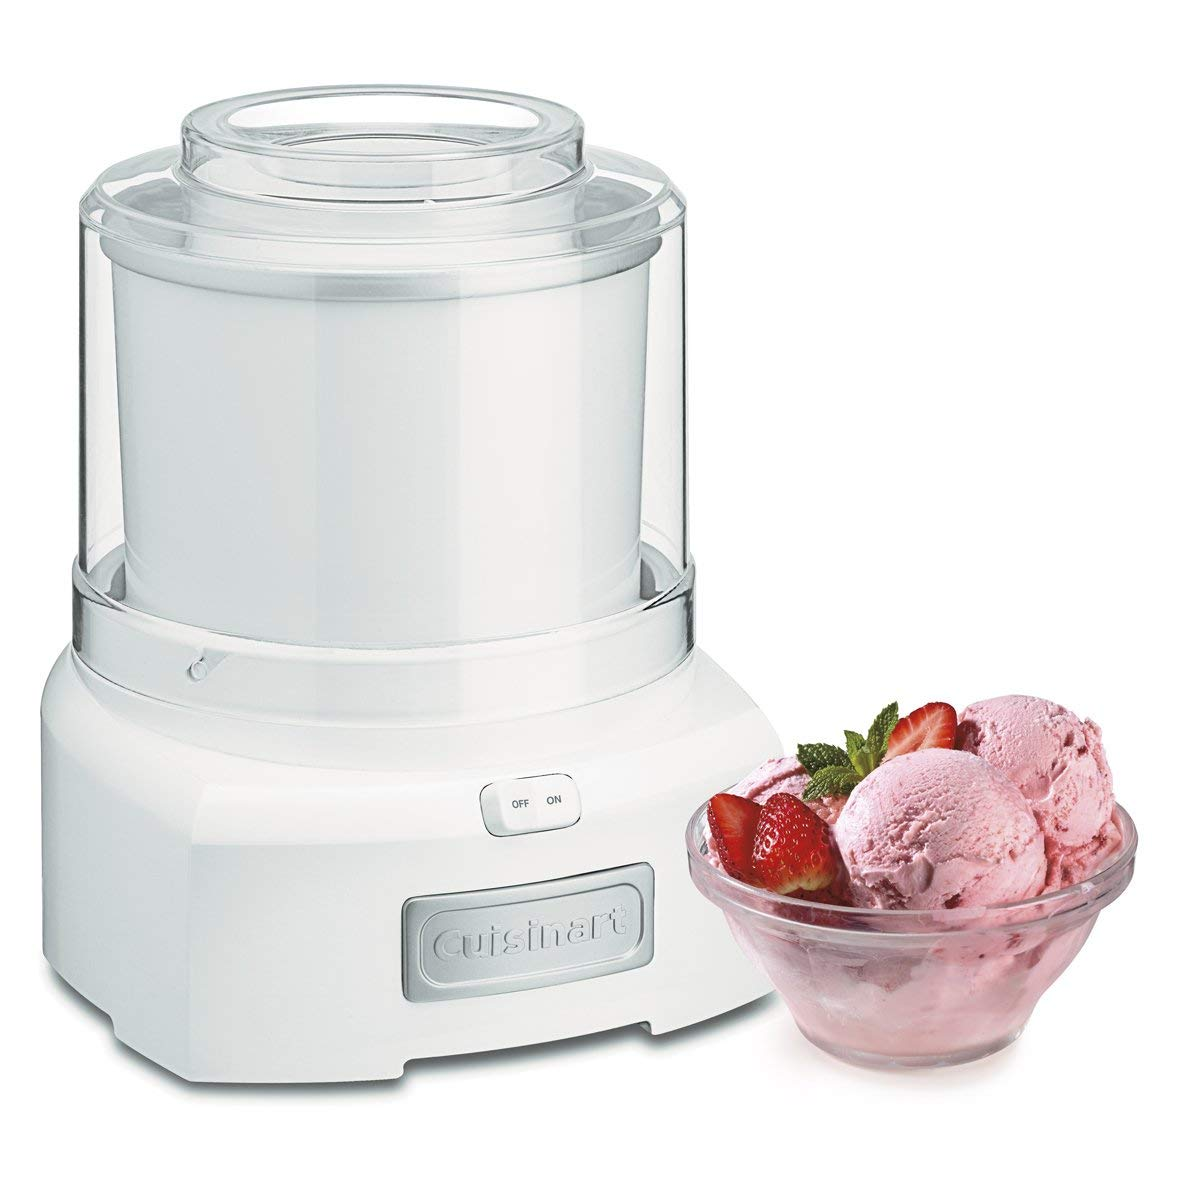 Review of Cuisinart ICE-21 1.5 Quart Frozen Yogurt-Ice Cream Maker